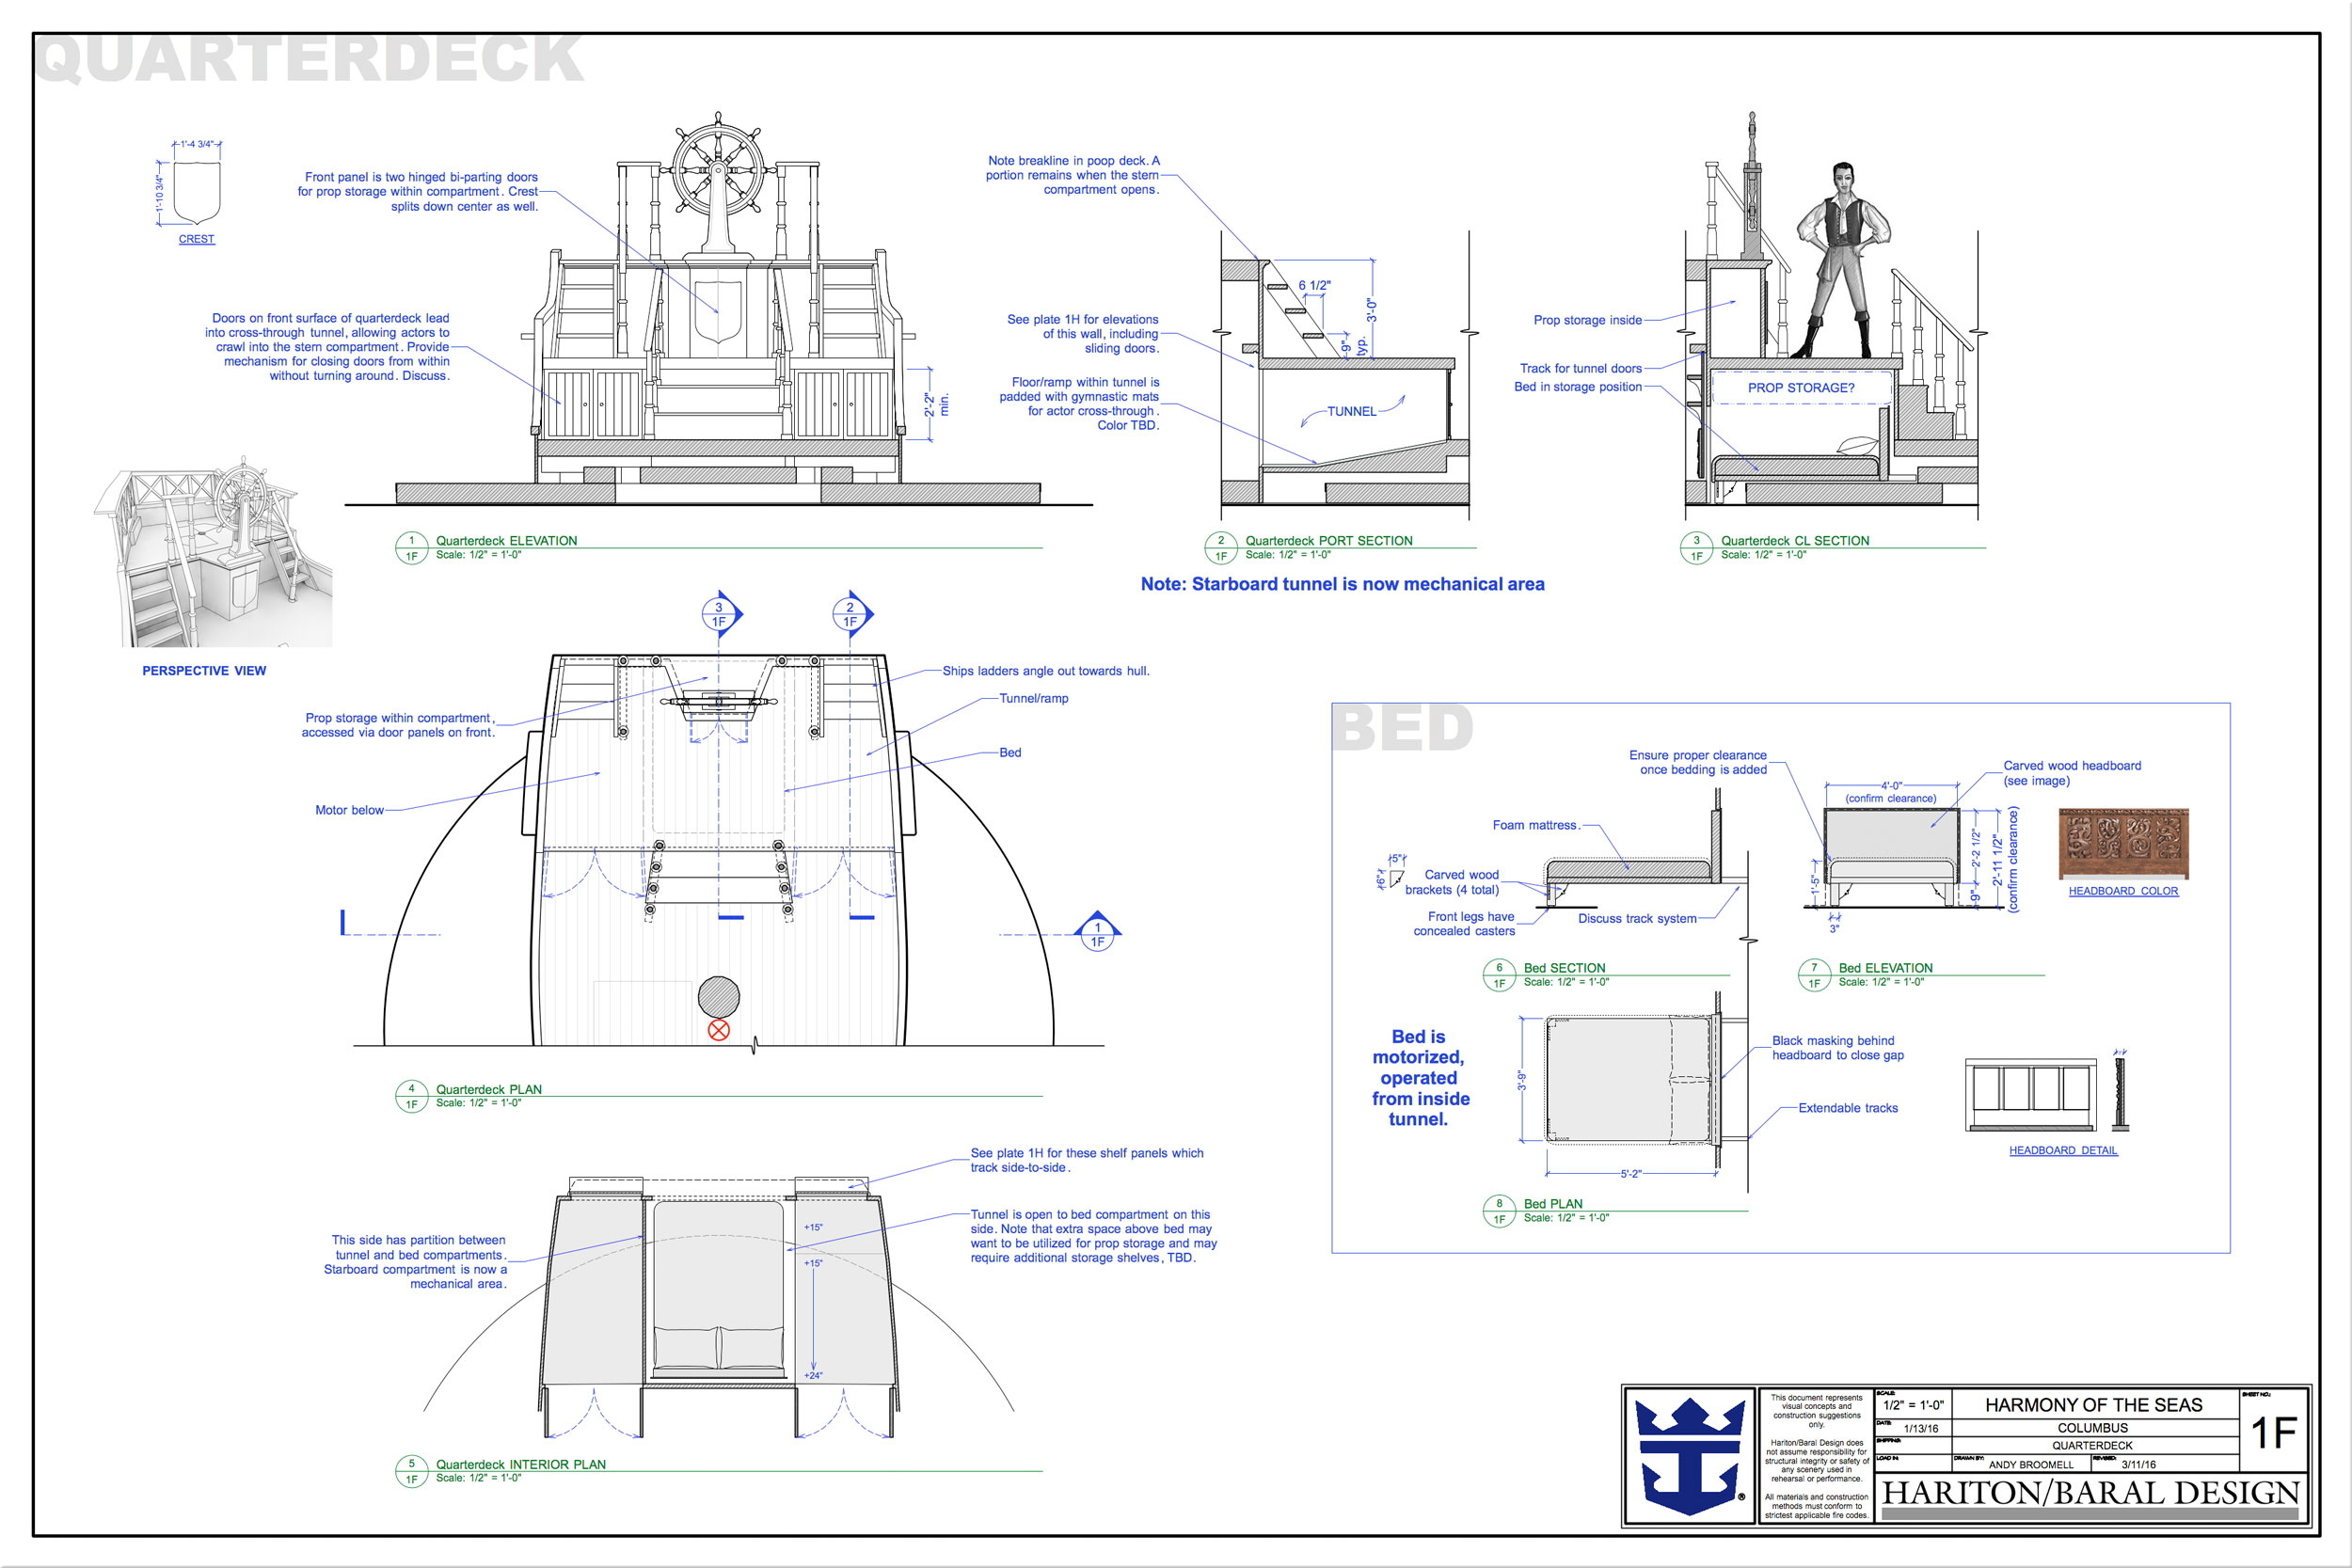 andy-broomell-drafting-columbus6-musical-vectorworks-scenic-design-scenery-plans-sailing-ship.jpg